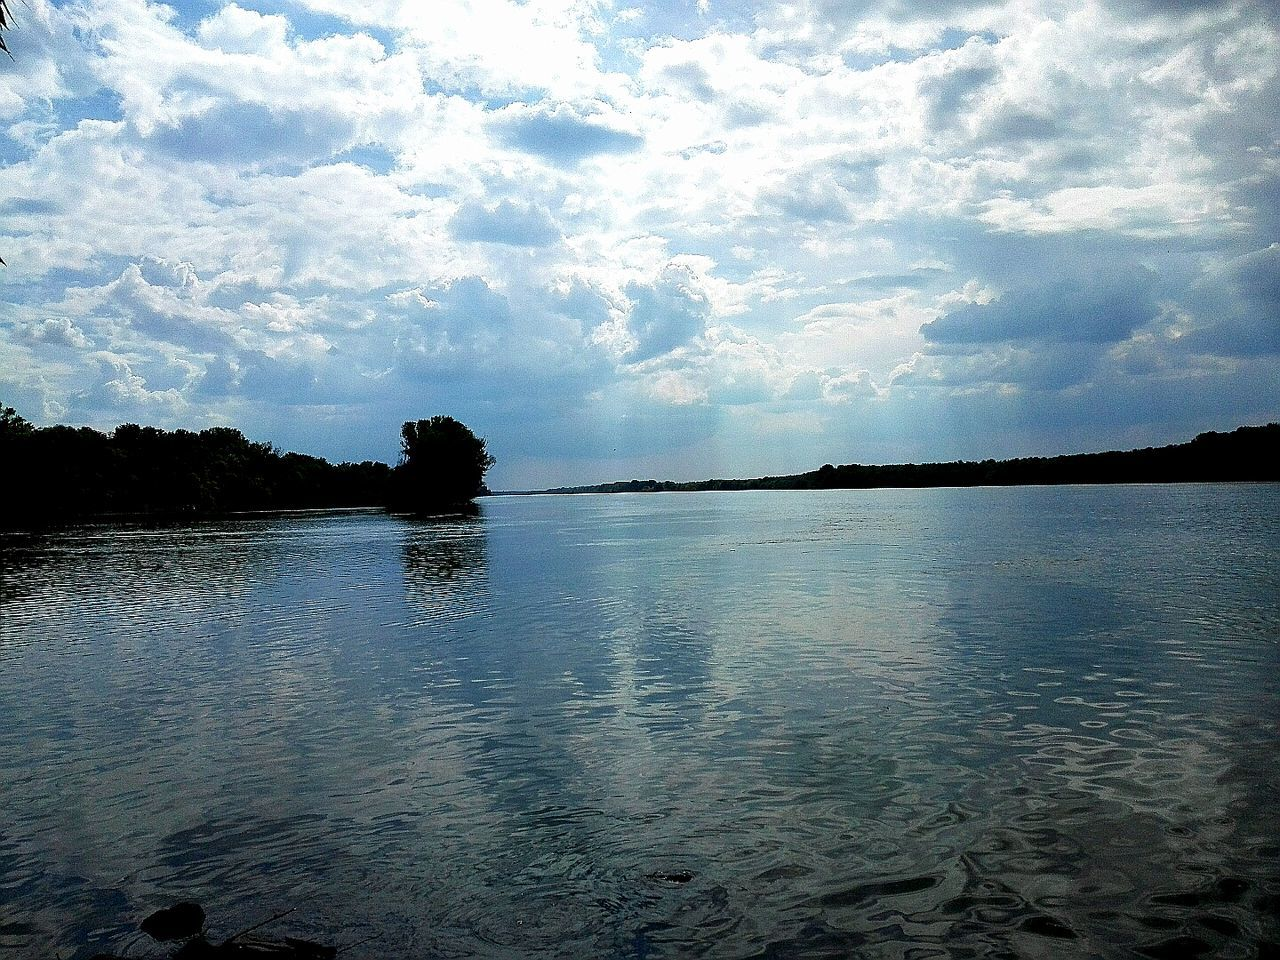 sky, tranquility, nature, tranquil scene, water, beauty in nature, scenics, no people, silhouette, cloud - sky, outdoors, tree, day